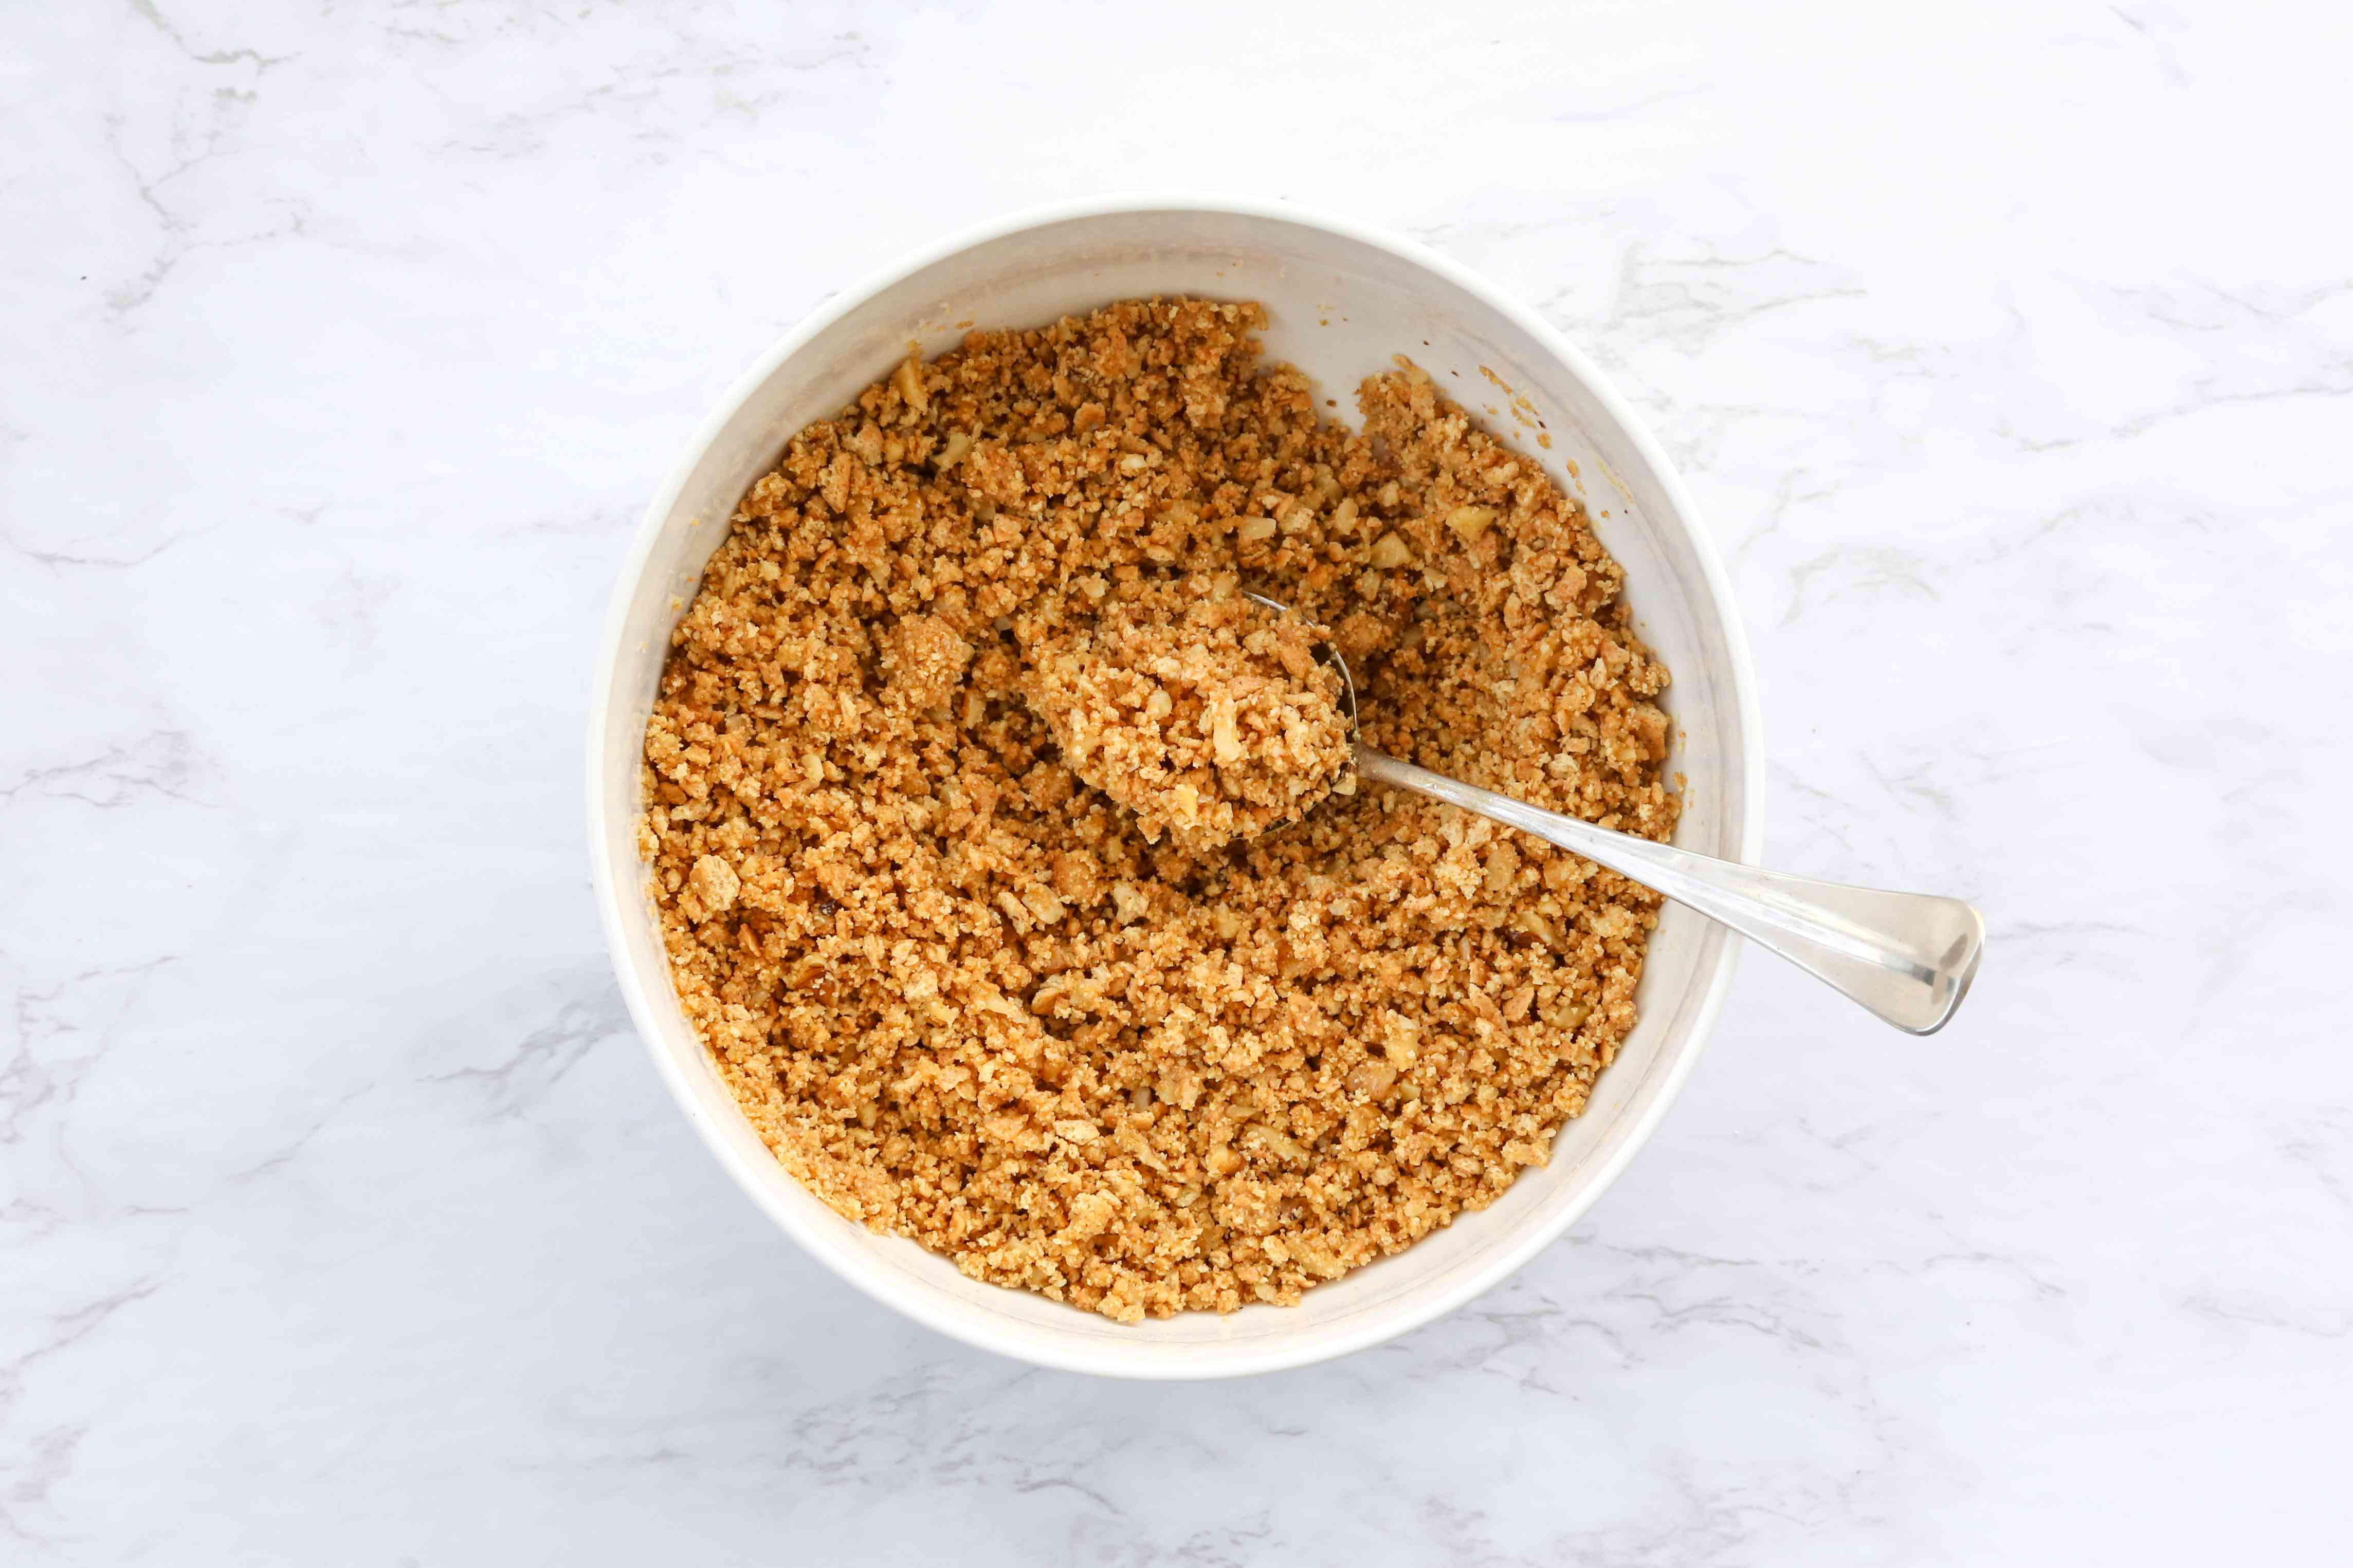 combine the graham cracker crumbs, butter, and walnuts in a bowl